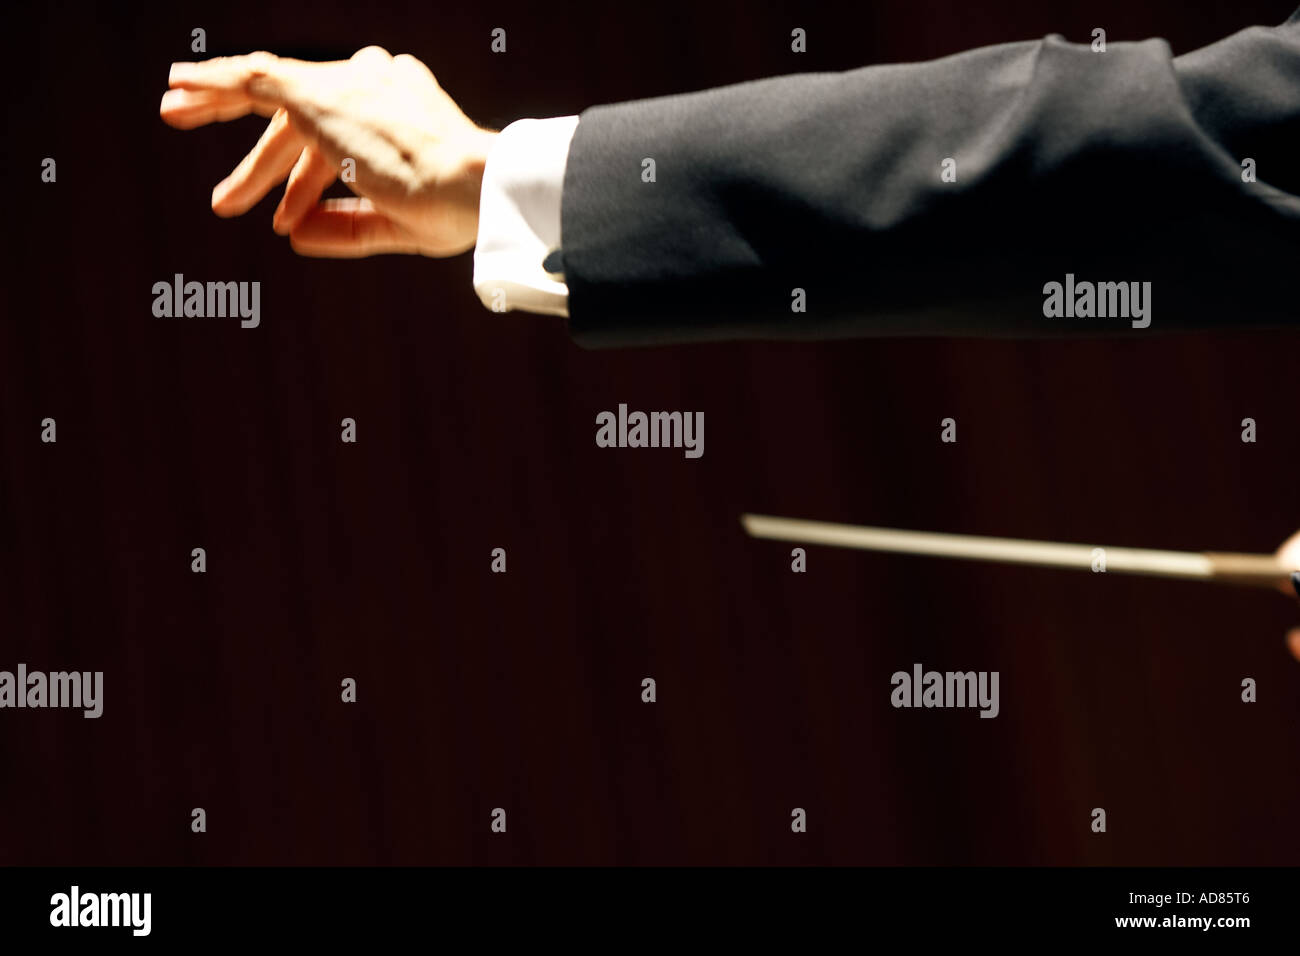 Orchestra conductors hand and bow art orchestra performance performing art performing arts performance art classical music - Stock Image